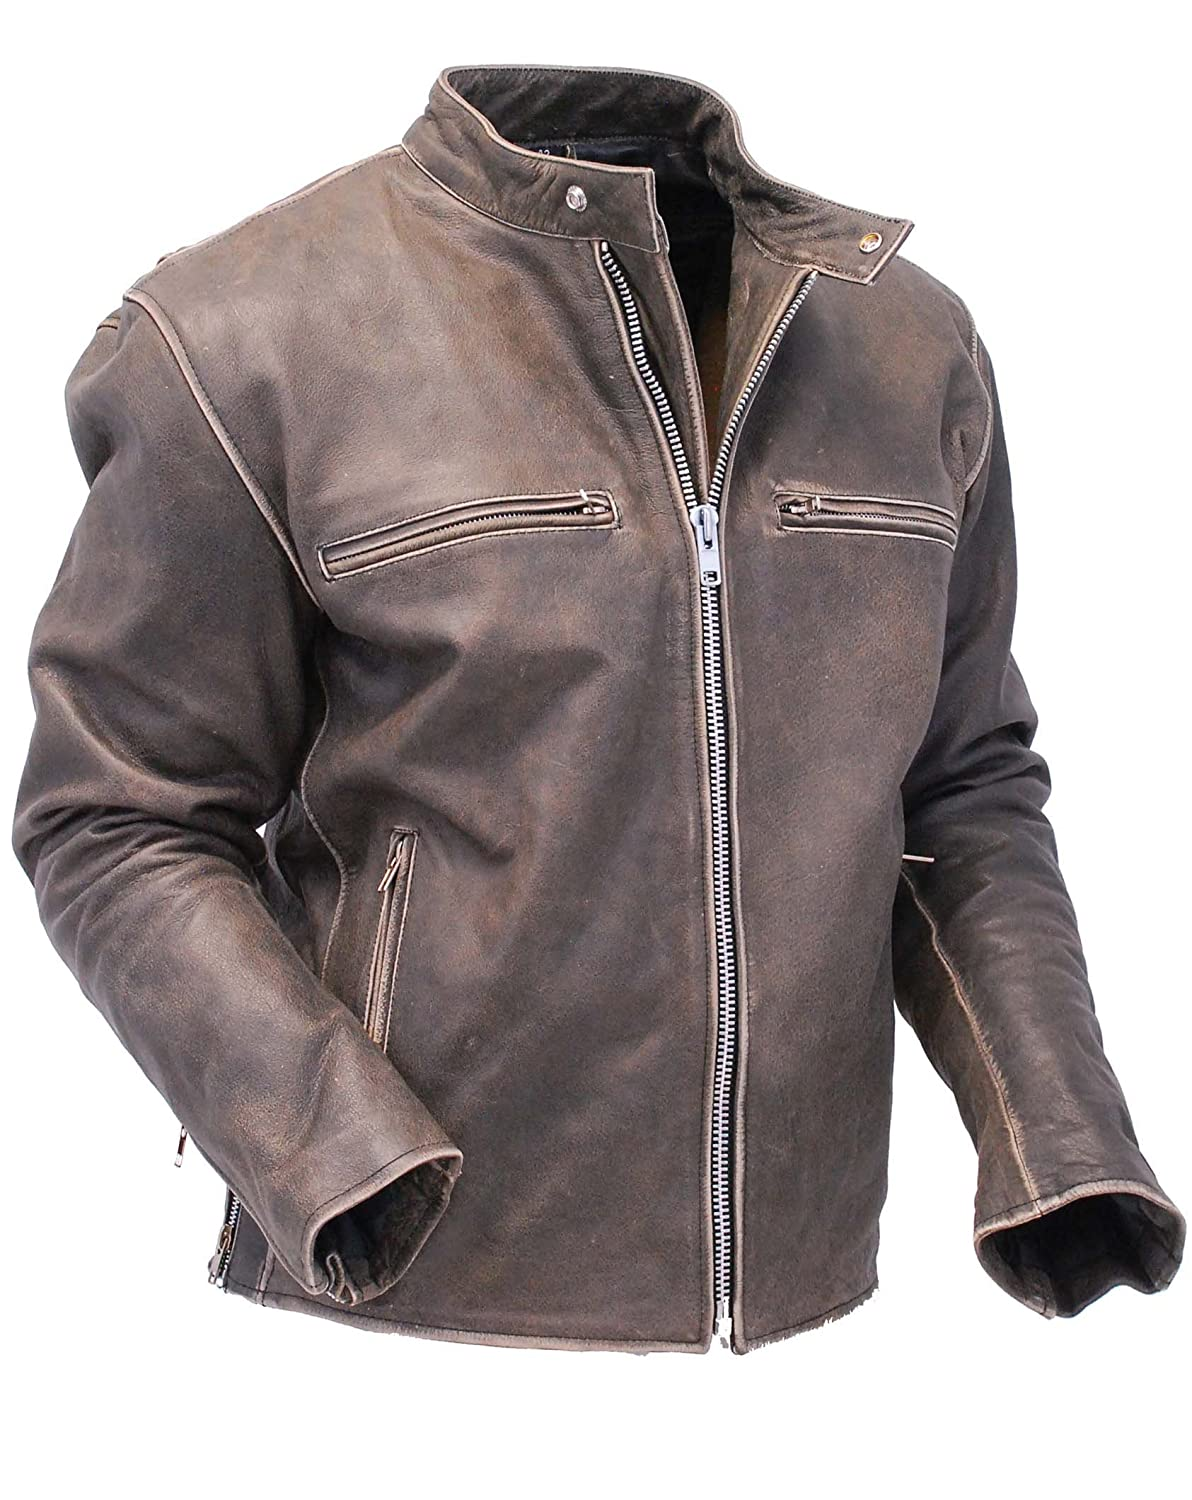 Jamin' Leather Vintage Brown Rebel Rider Leather Motorcycle Jacket  #MA11026ZDN at Amazon Men's Clothing store: